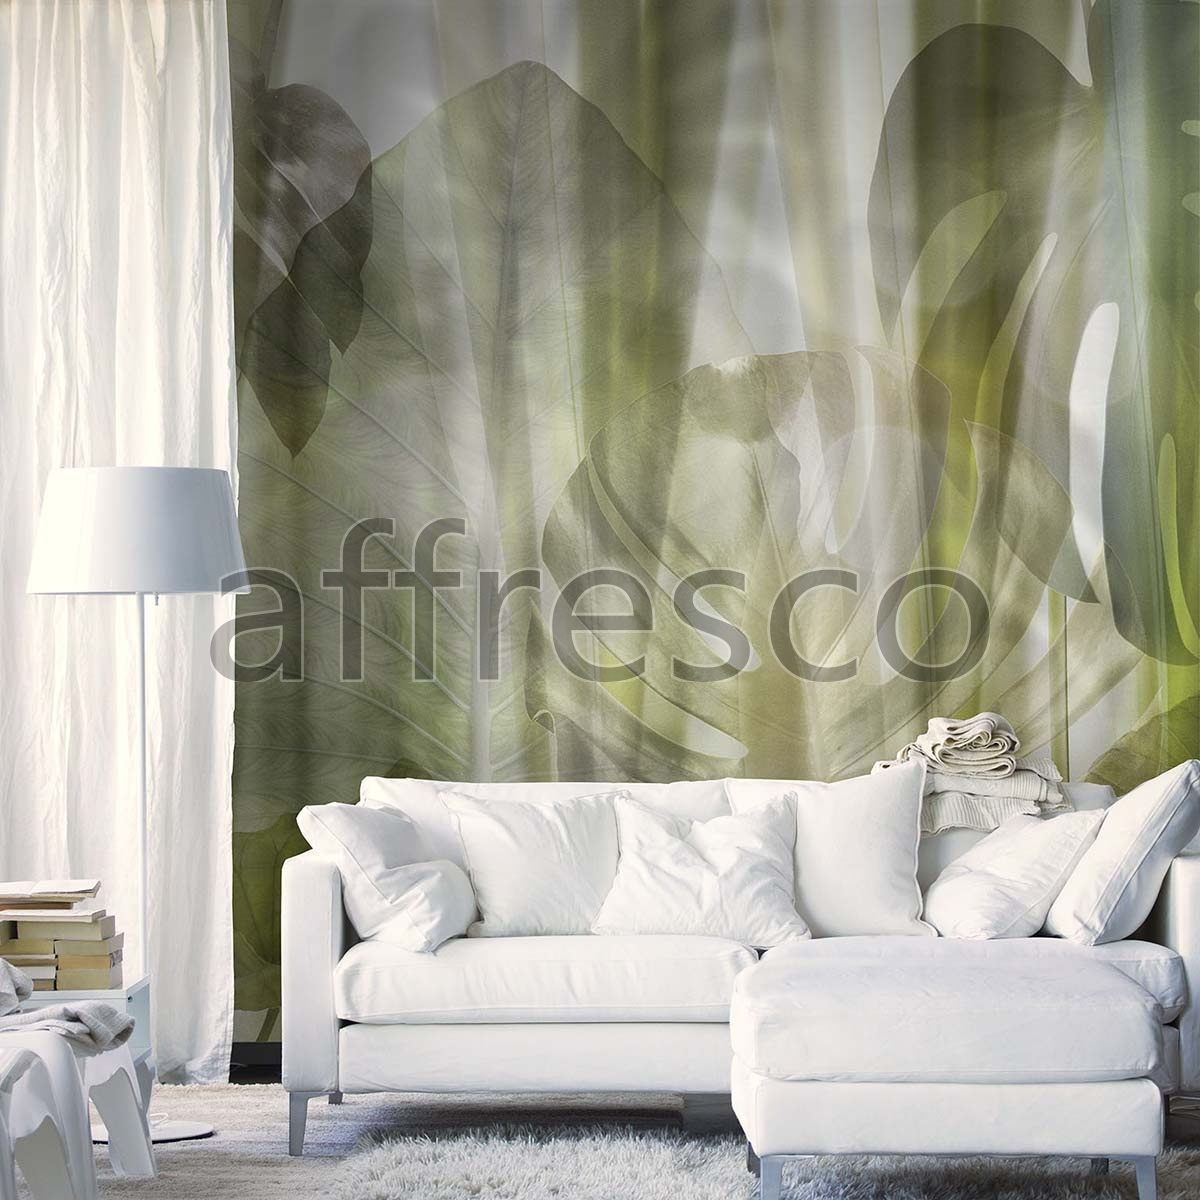 RE200-COL1 | New Art | Affresco Factory